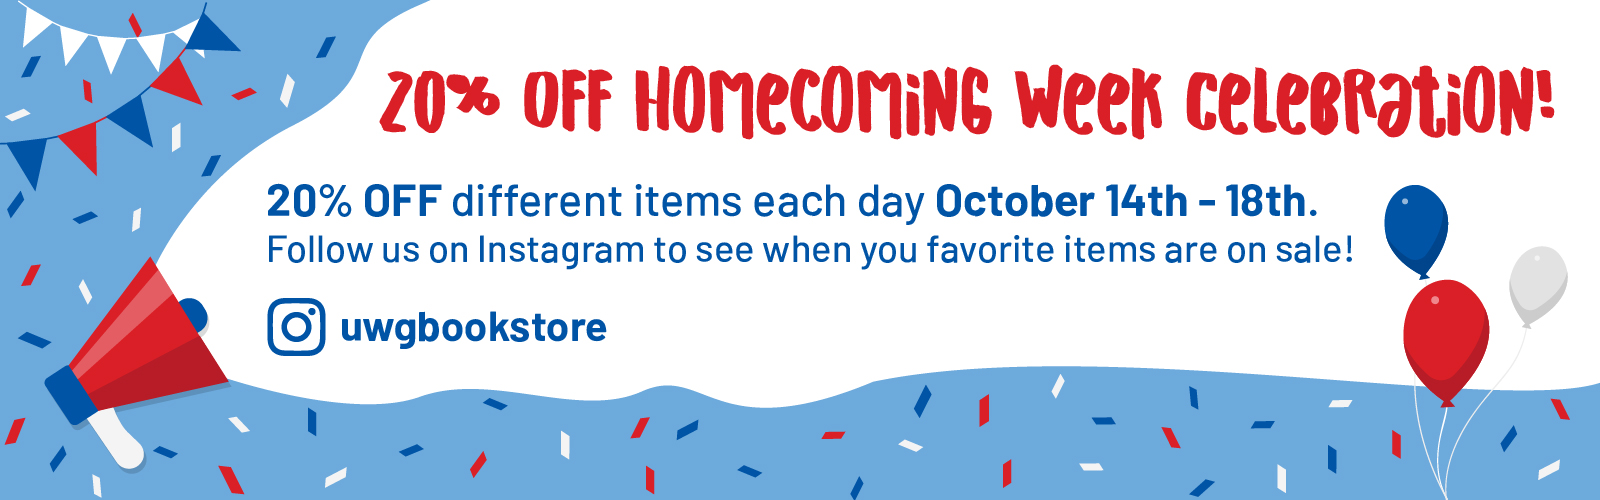 Homecoming Celebration: 20% Off Different items each day Oct. 14 - 18th; Follow us on Instagram to see when your favorite items are on sale! @uwgbookstore